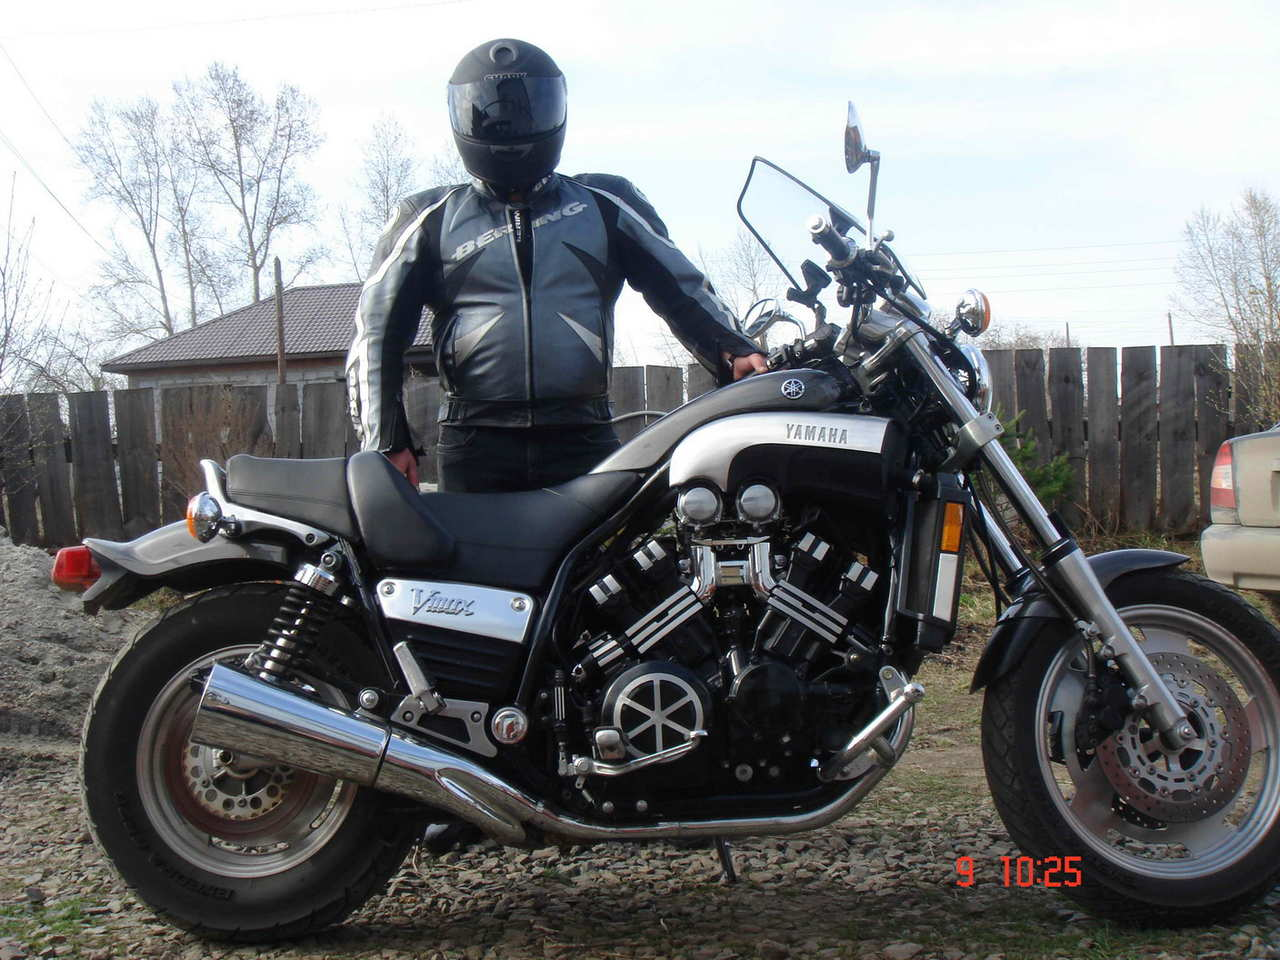 2001 Yamaha Vmax1200 Pics, 1.2 For Sale